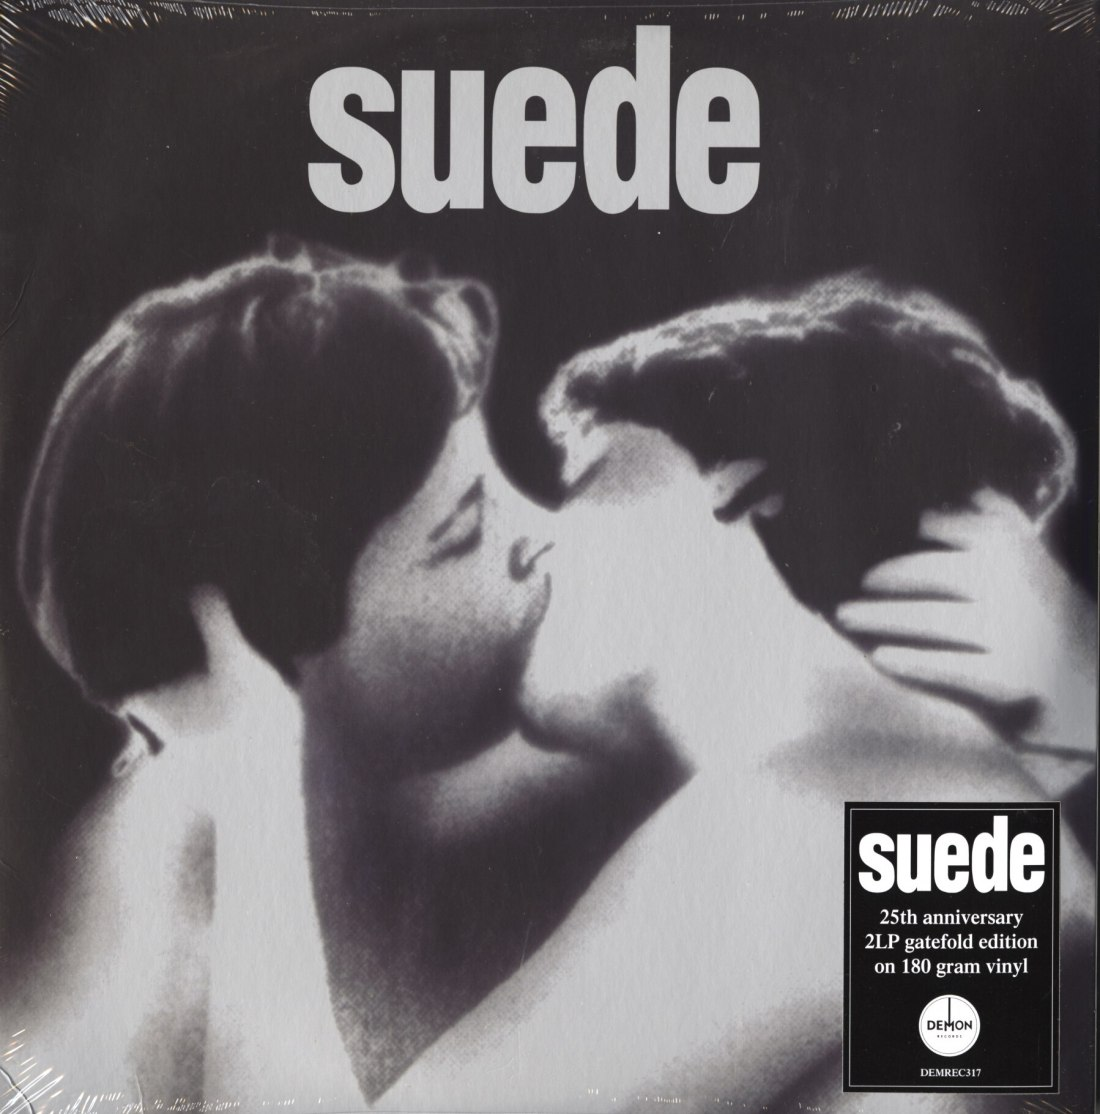 Suede - Suede: 25th Anniversary Edition [Import] - 2XLP, Vinyl, Demon Records UK, 2018